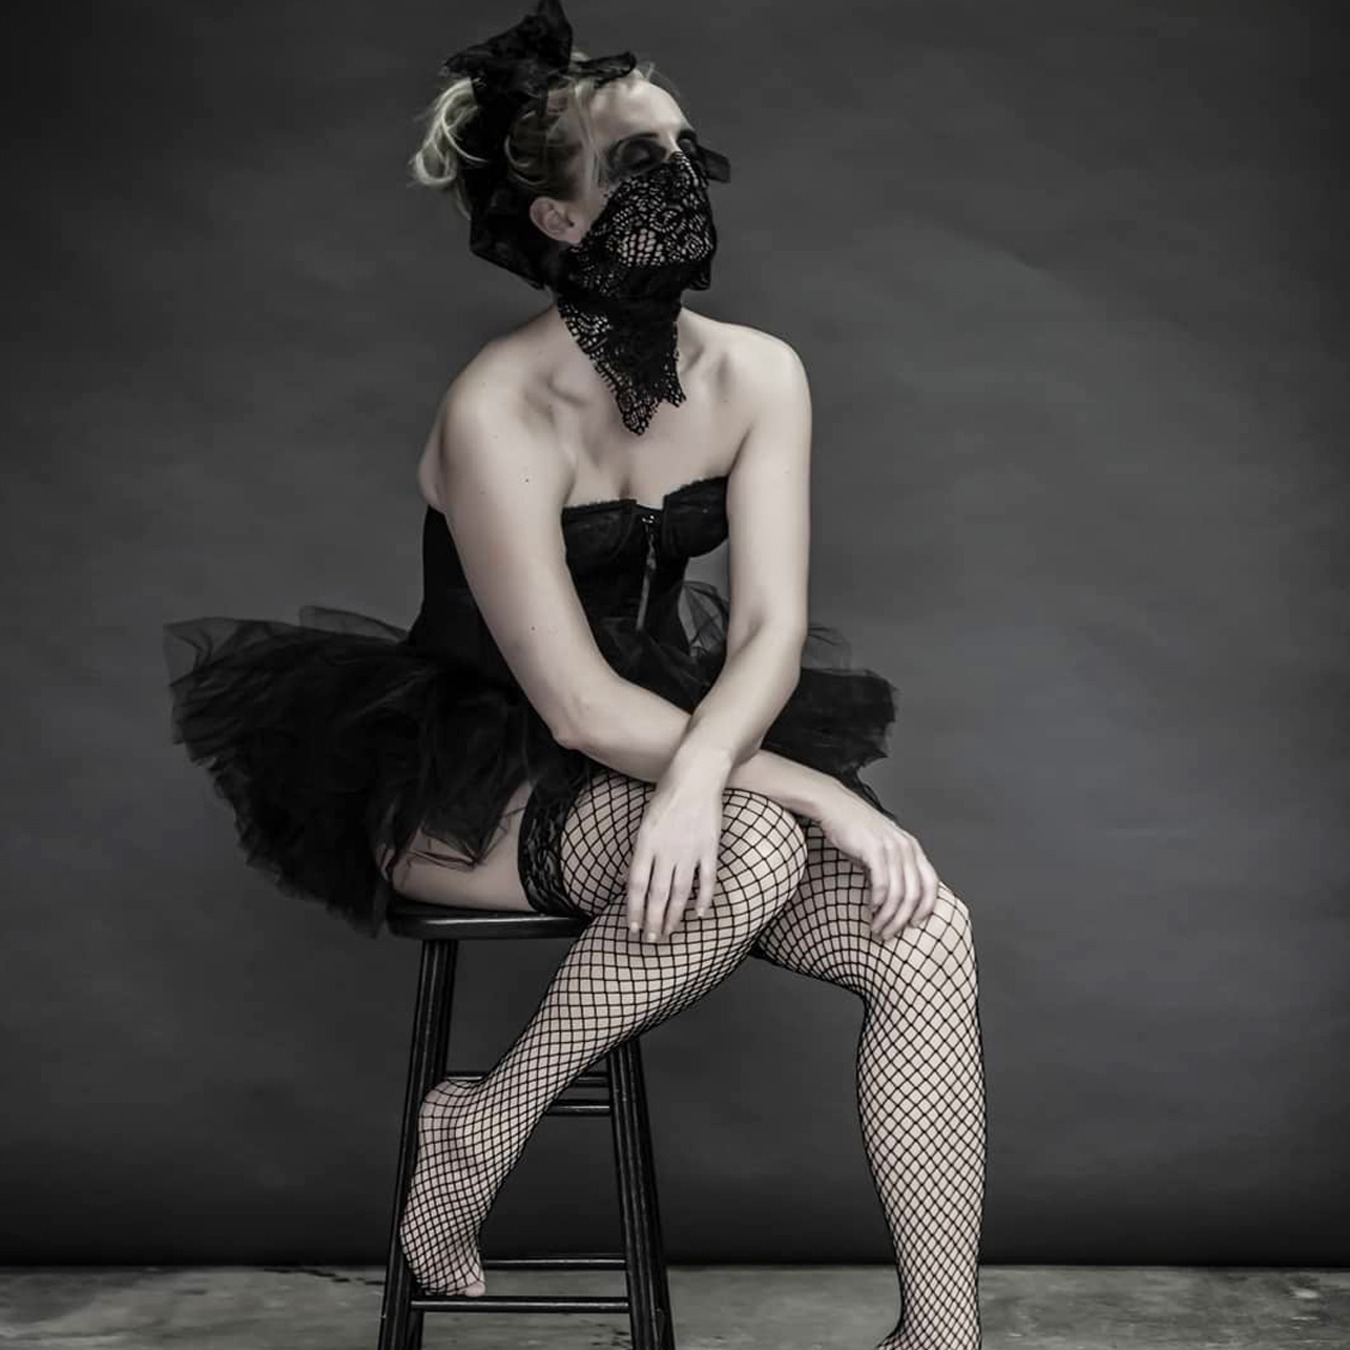 Ballerina sitting on a high chair with her left foot on the ground, wearing a black tutu skirt with black corsage; covering her mouth with a screened scarf looking up like waiting for something to happen